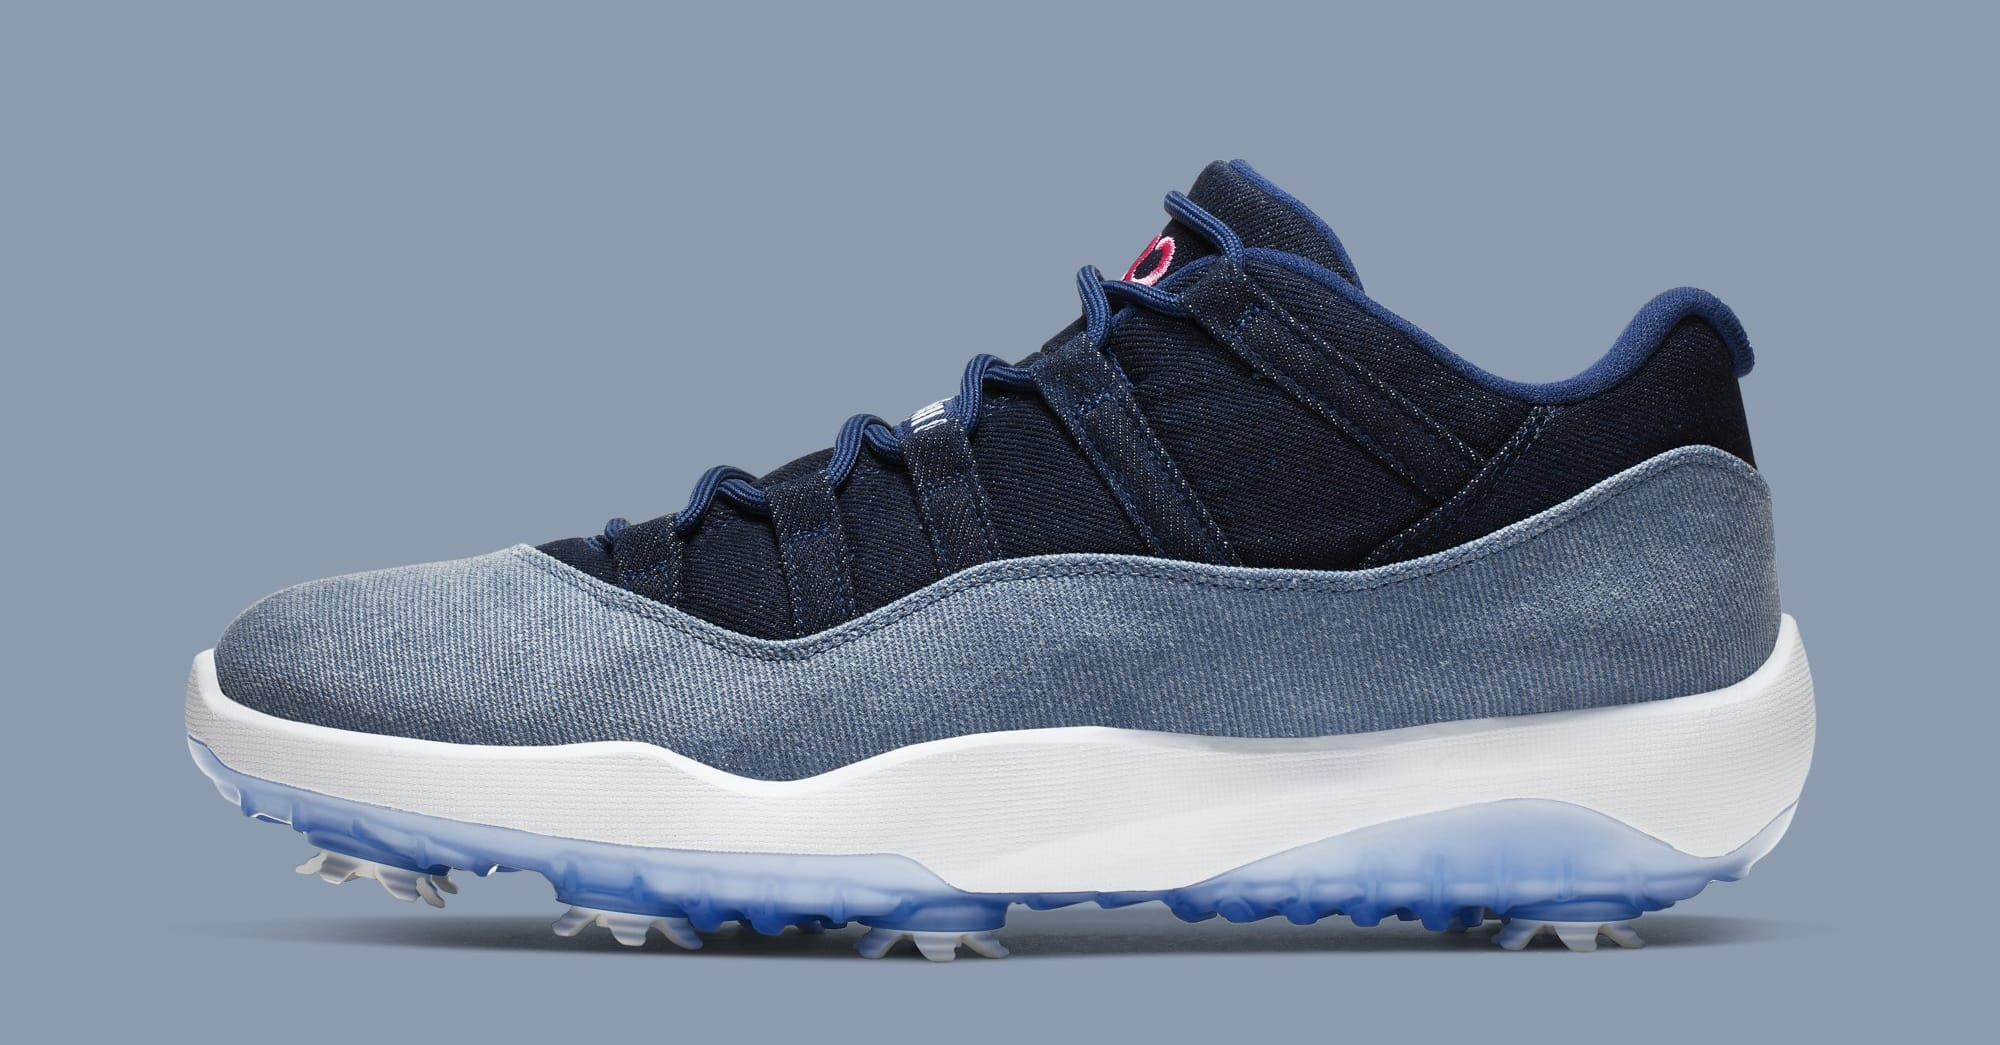 Air Jordan 11 Golf 'Denim' AQ0963-400 (Lateral)